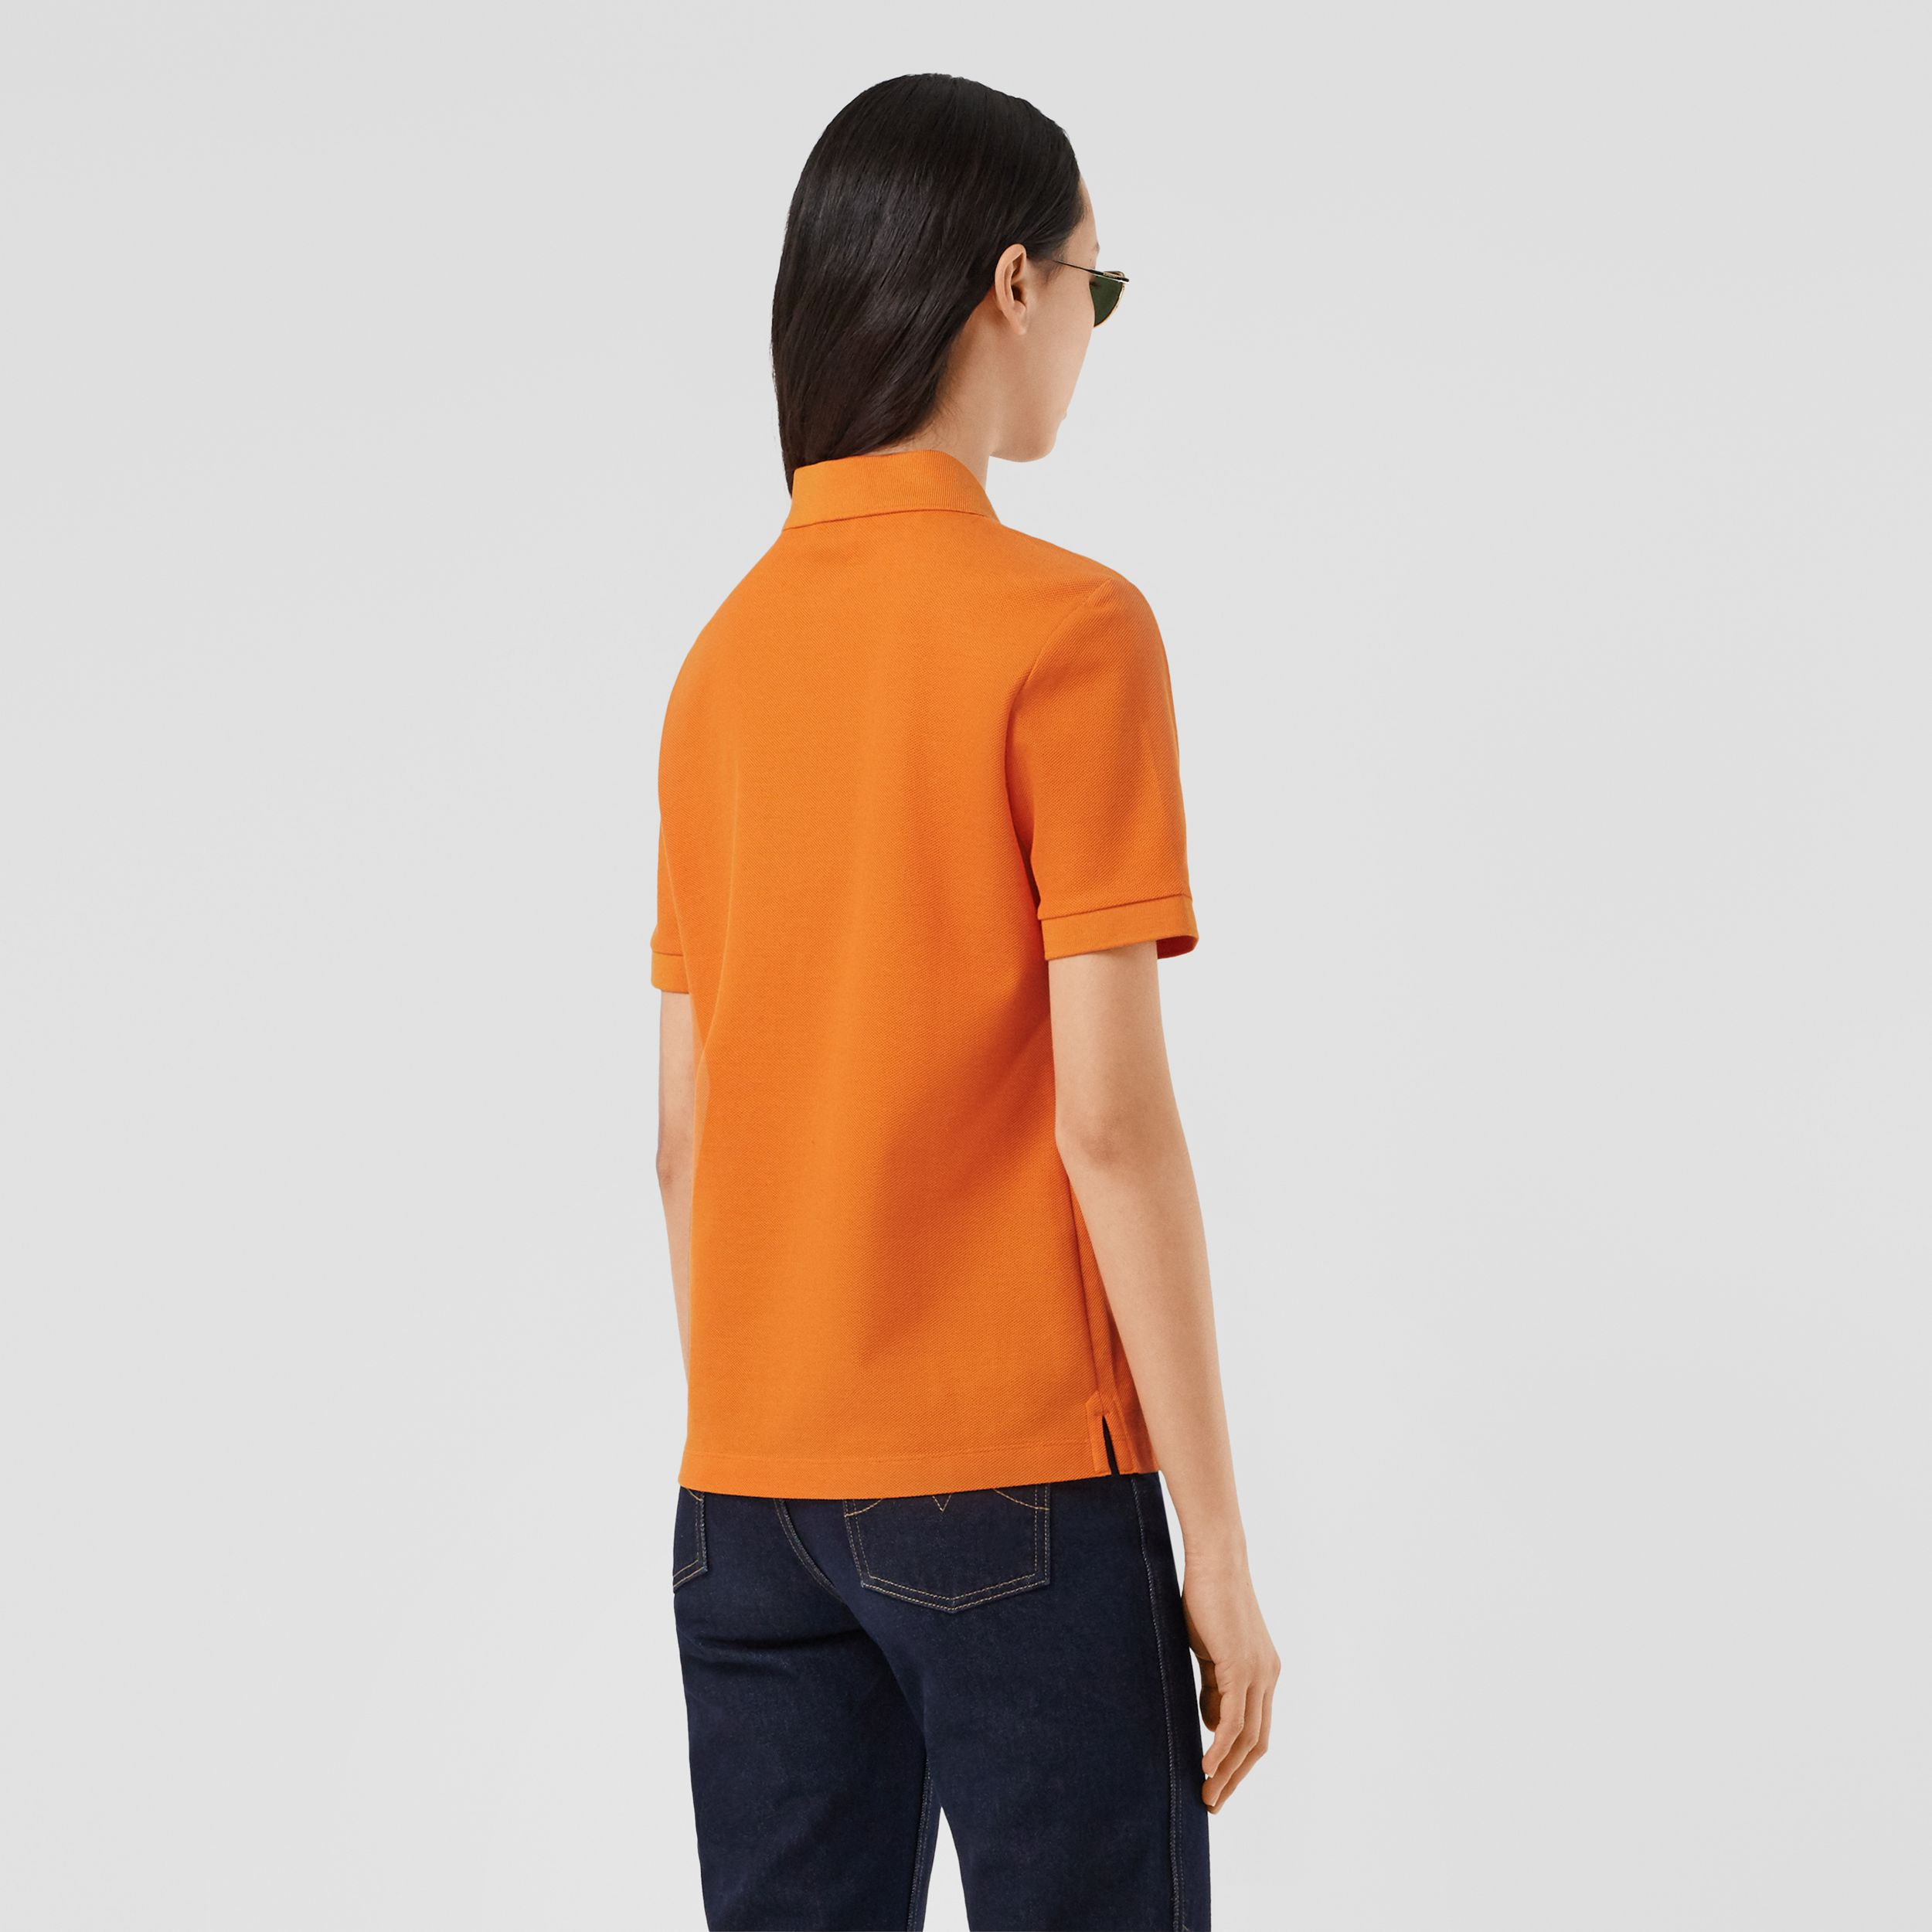 Monogram Motif Cotton Piqué Polo Shirt in Bright Orange - Women | Burberry - 3